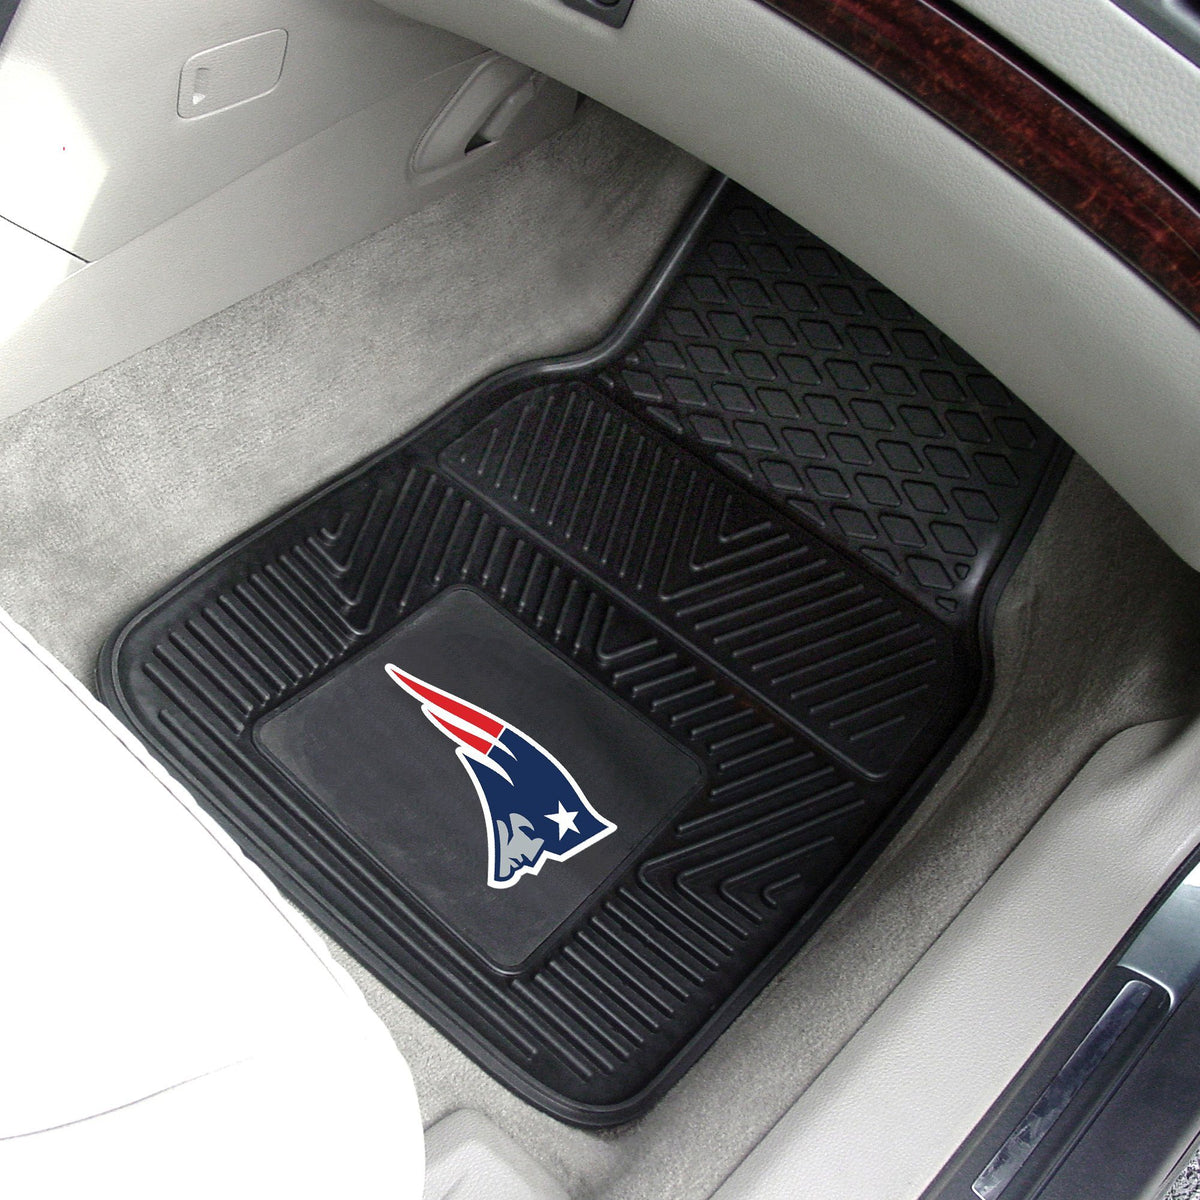 NFL - 2-pc Vinyl Car Mat Set NFL Mats, Front Car Mats, 2-pc Vinyl Car Mat Set, NFL, Auto Fan Mats New England Patriots